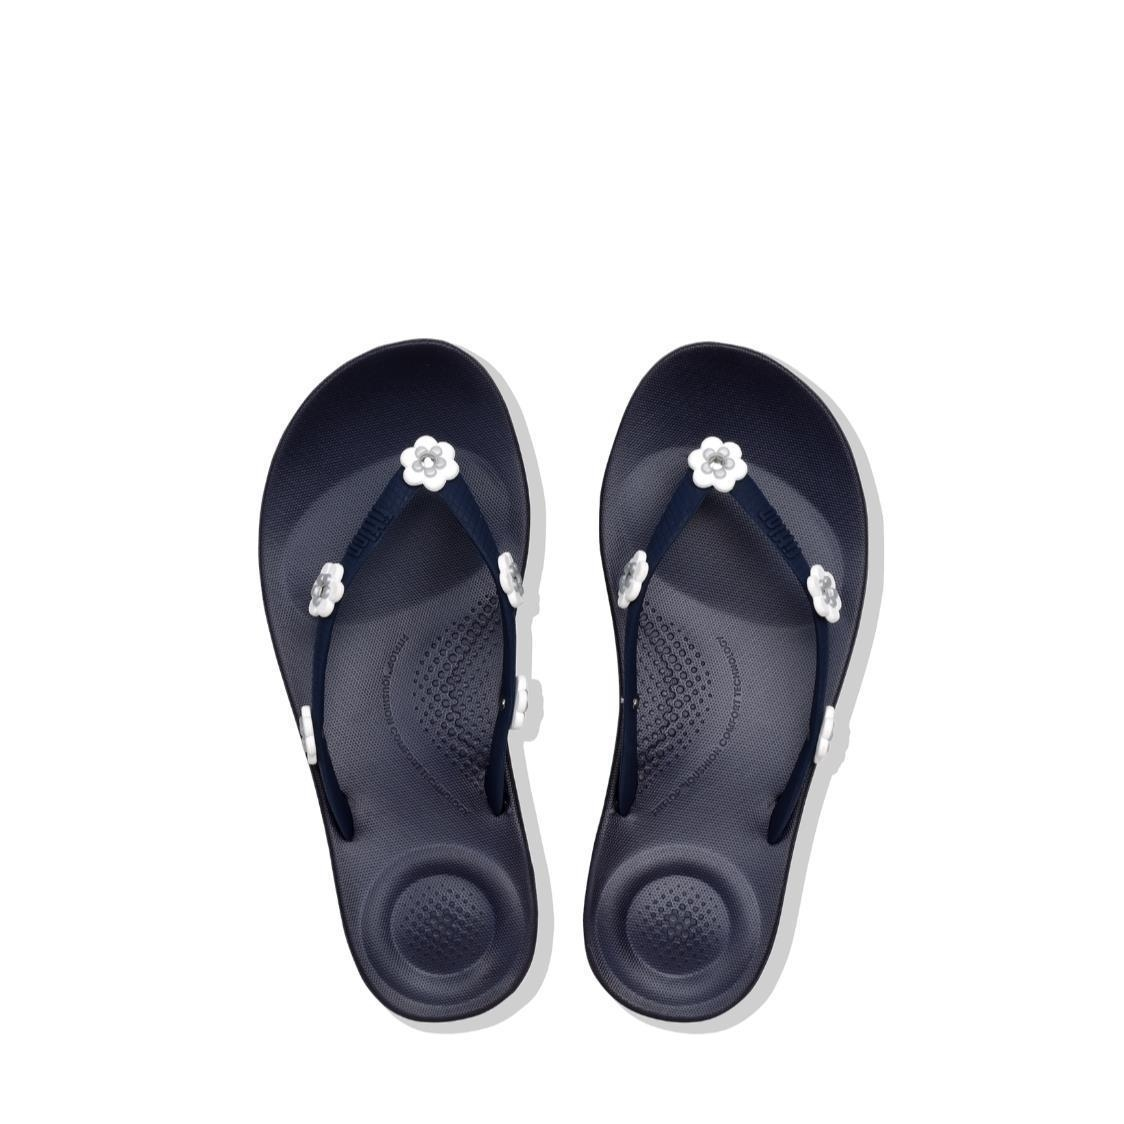 iQushion Flower-Stud Ergonomic Flip Flops Midnight Navy